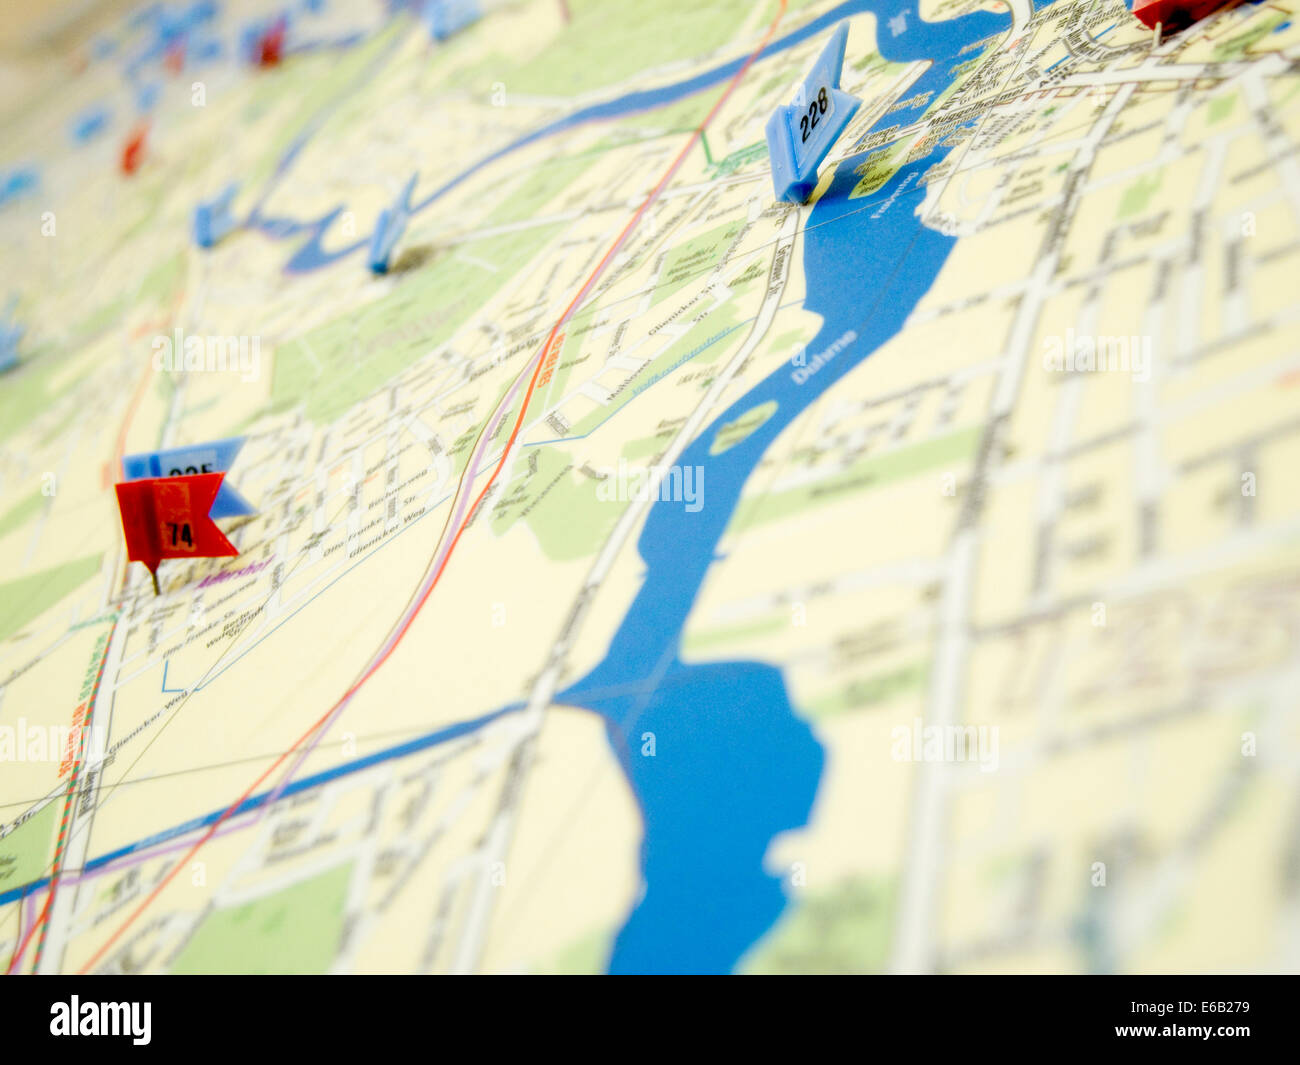 map,marker,road map - Stock Image